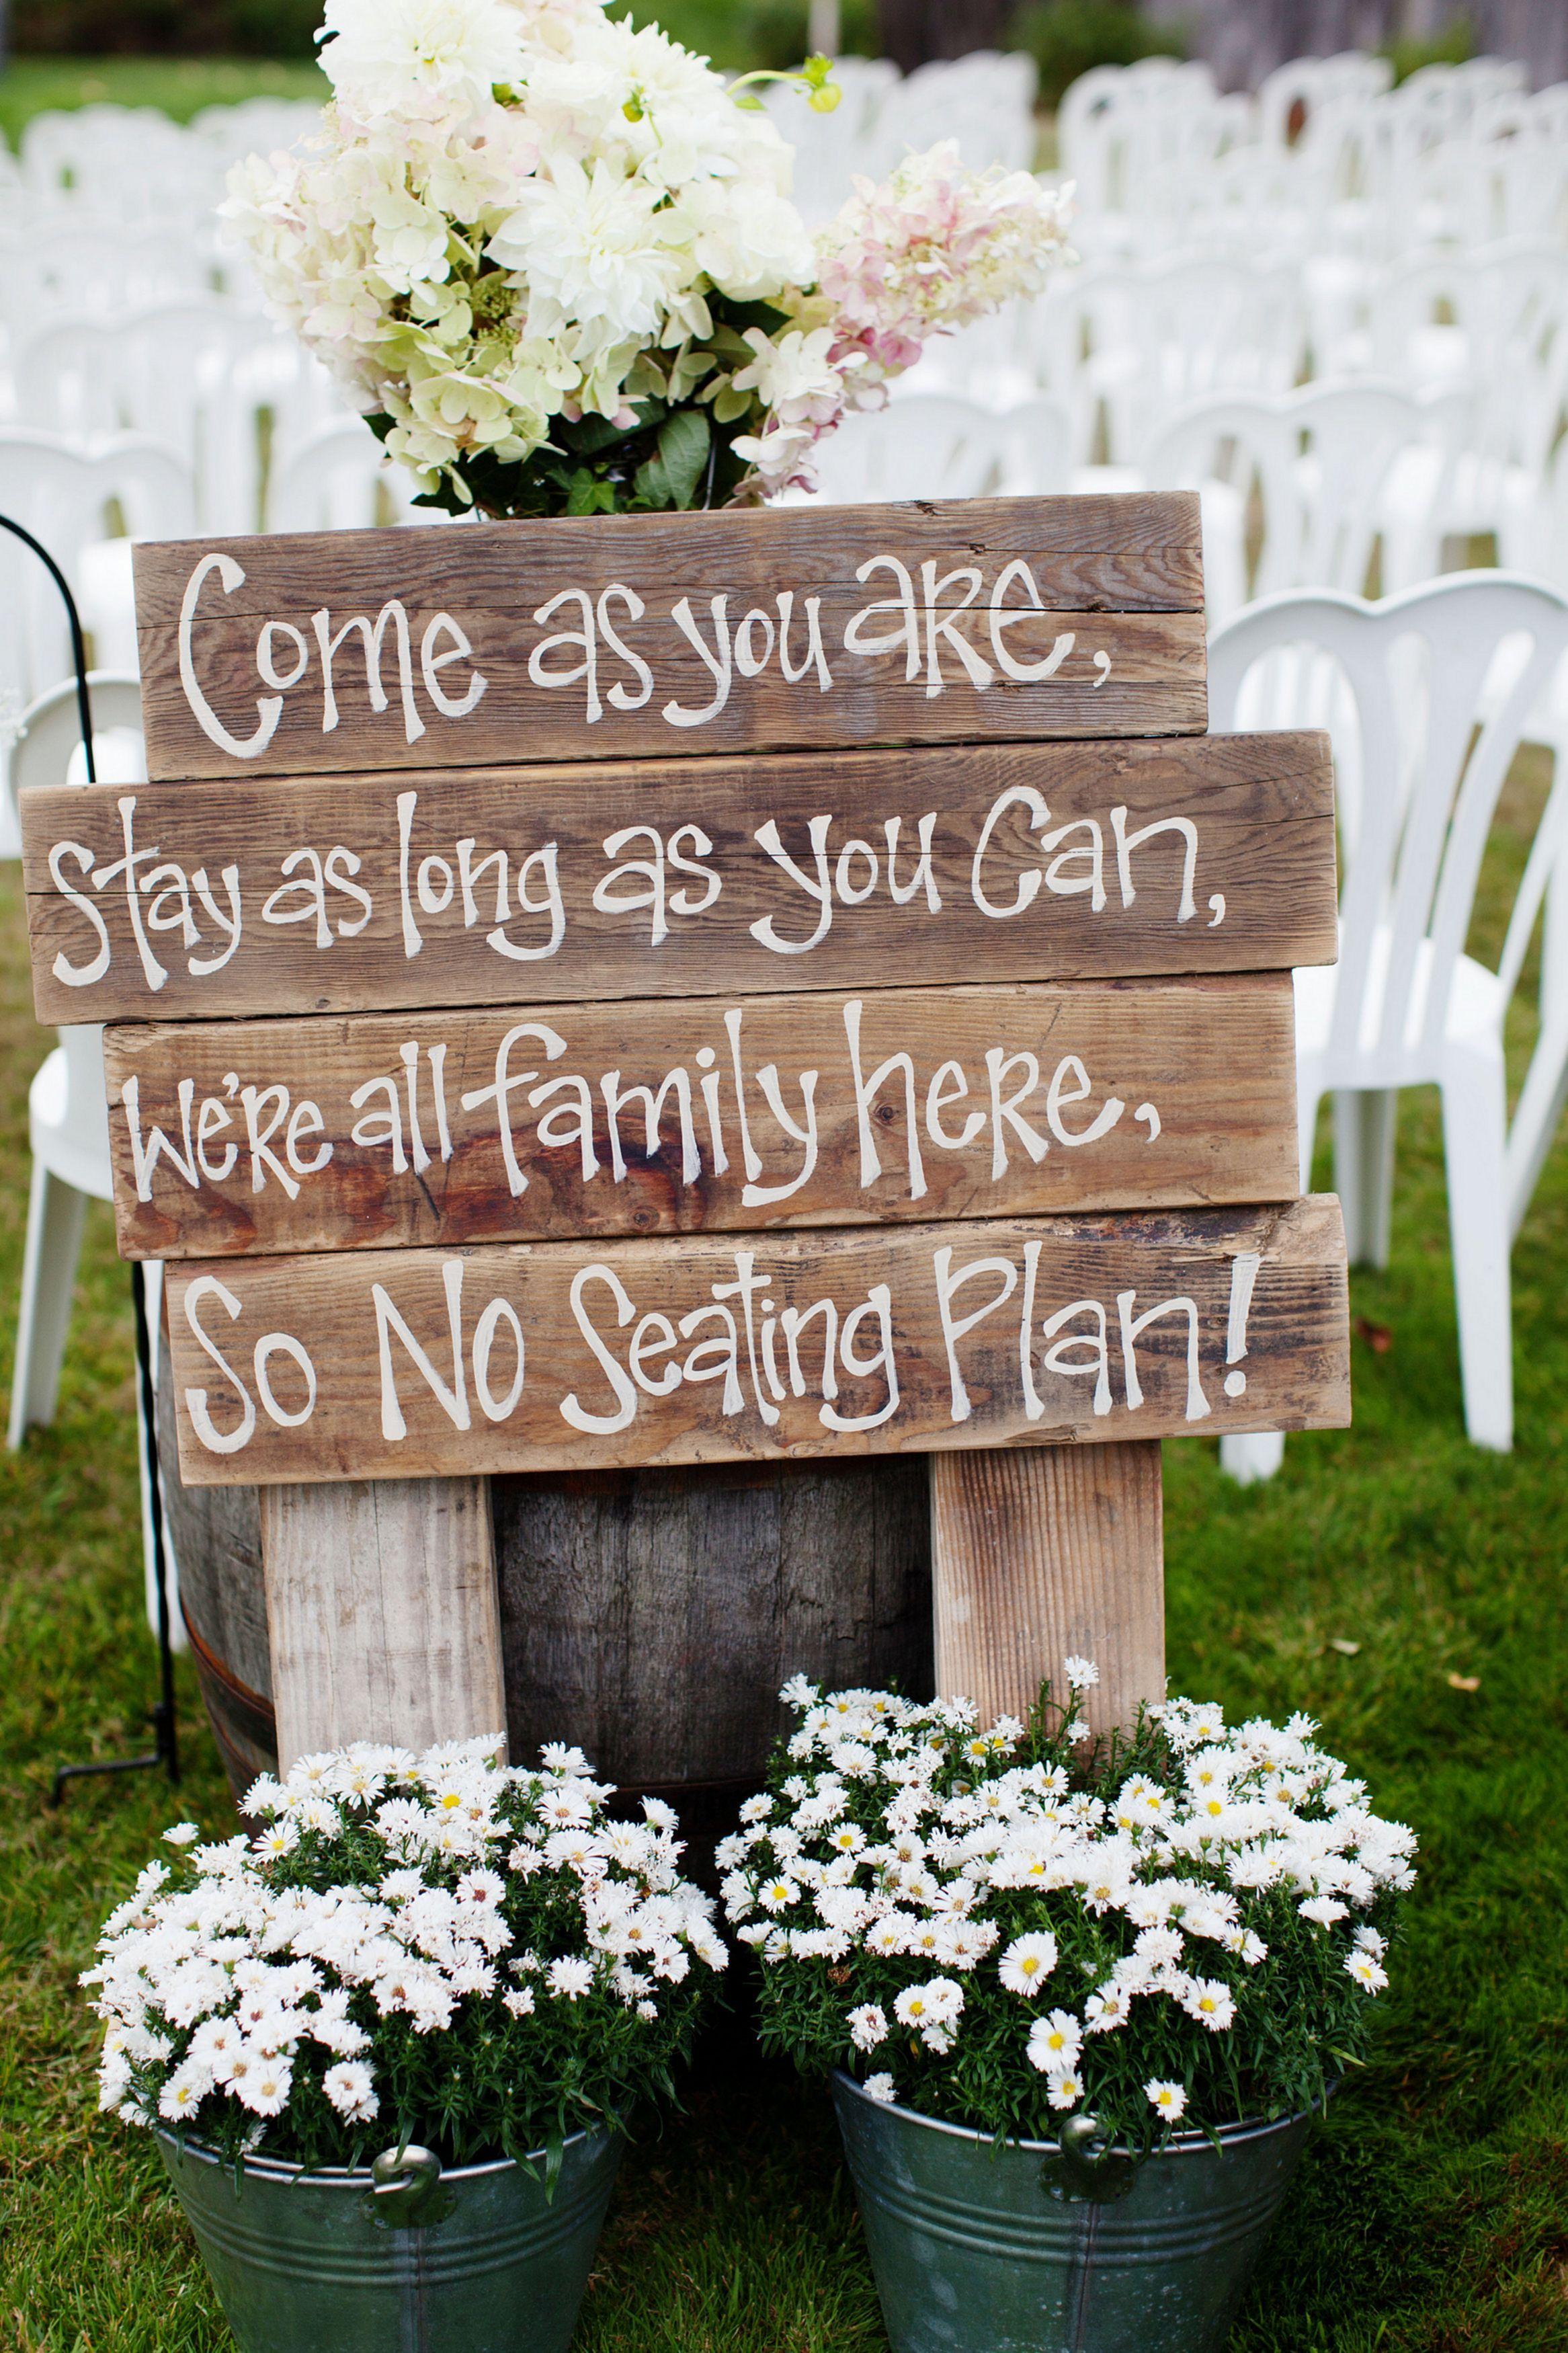 Garden wedding decoration ideas   Unforgettable Rustic Wedding Decor Ideas For Unique Wedding